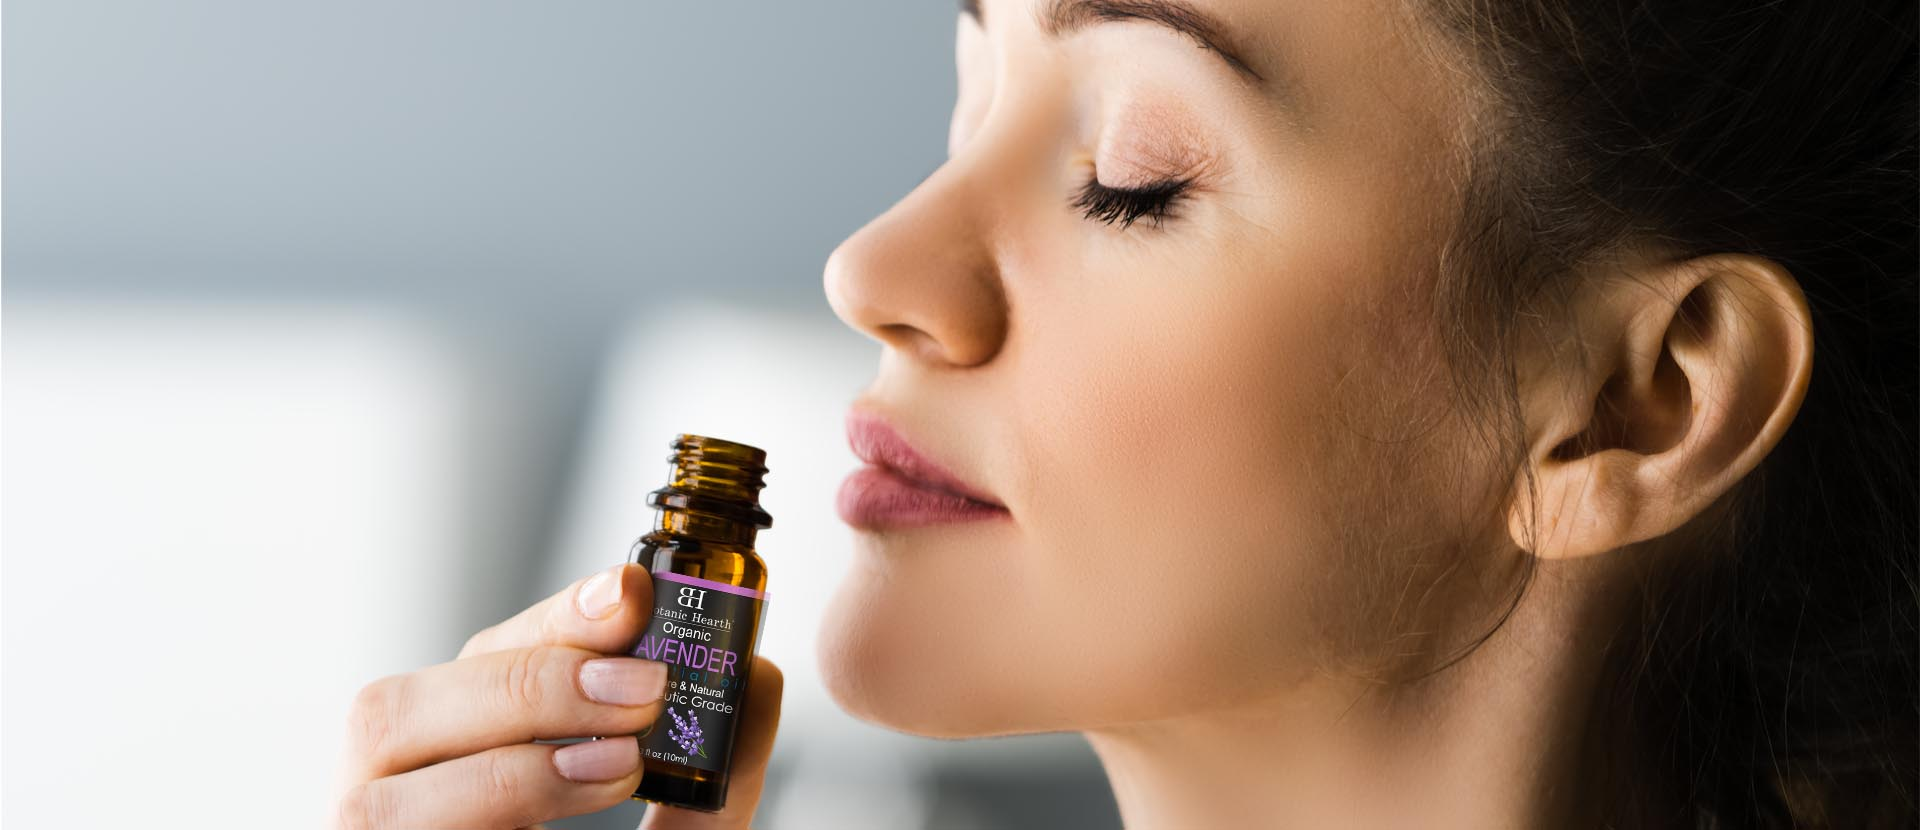 Essential-Oils-Aromatherapy-for-Relaxation-and-Stress-Relief-1